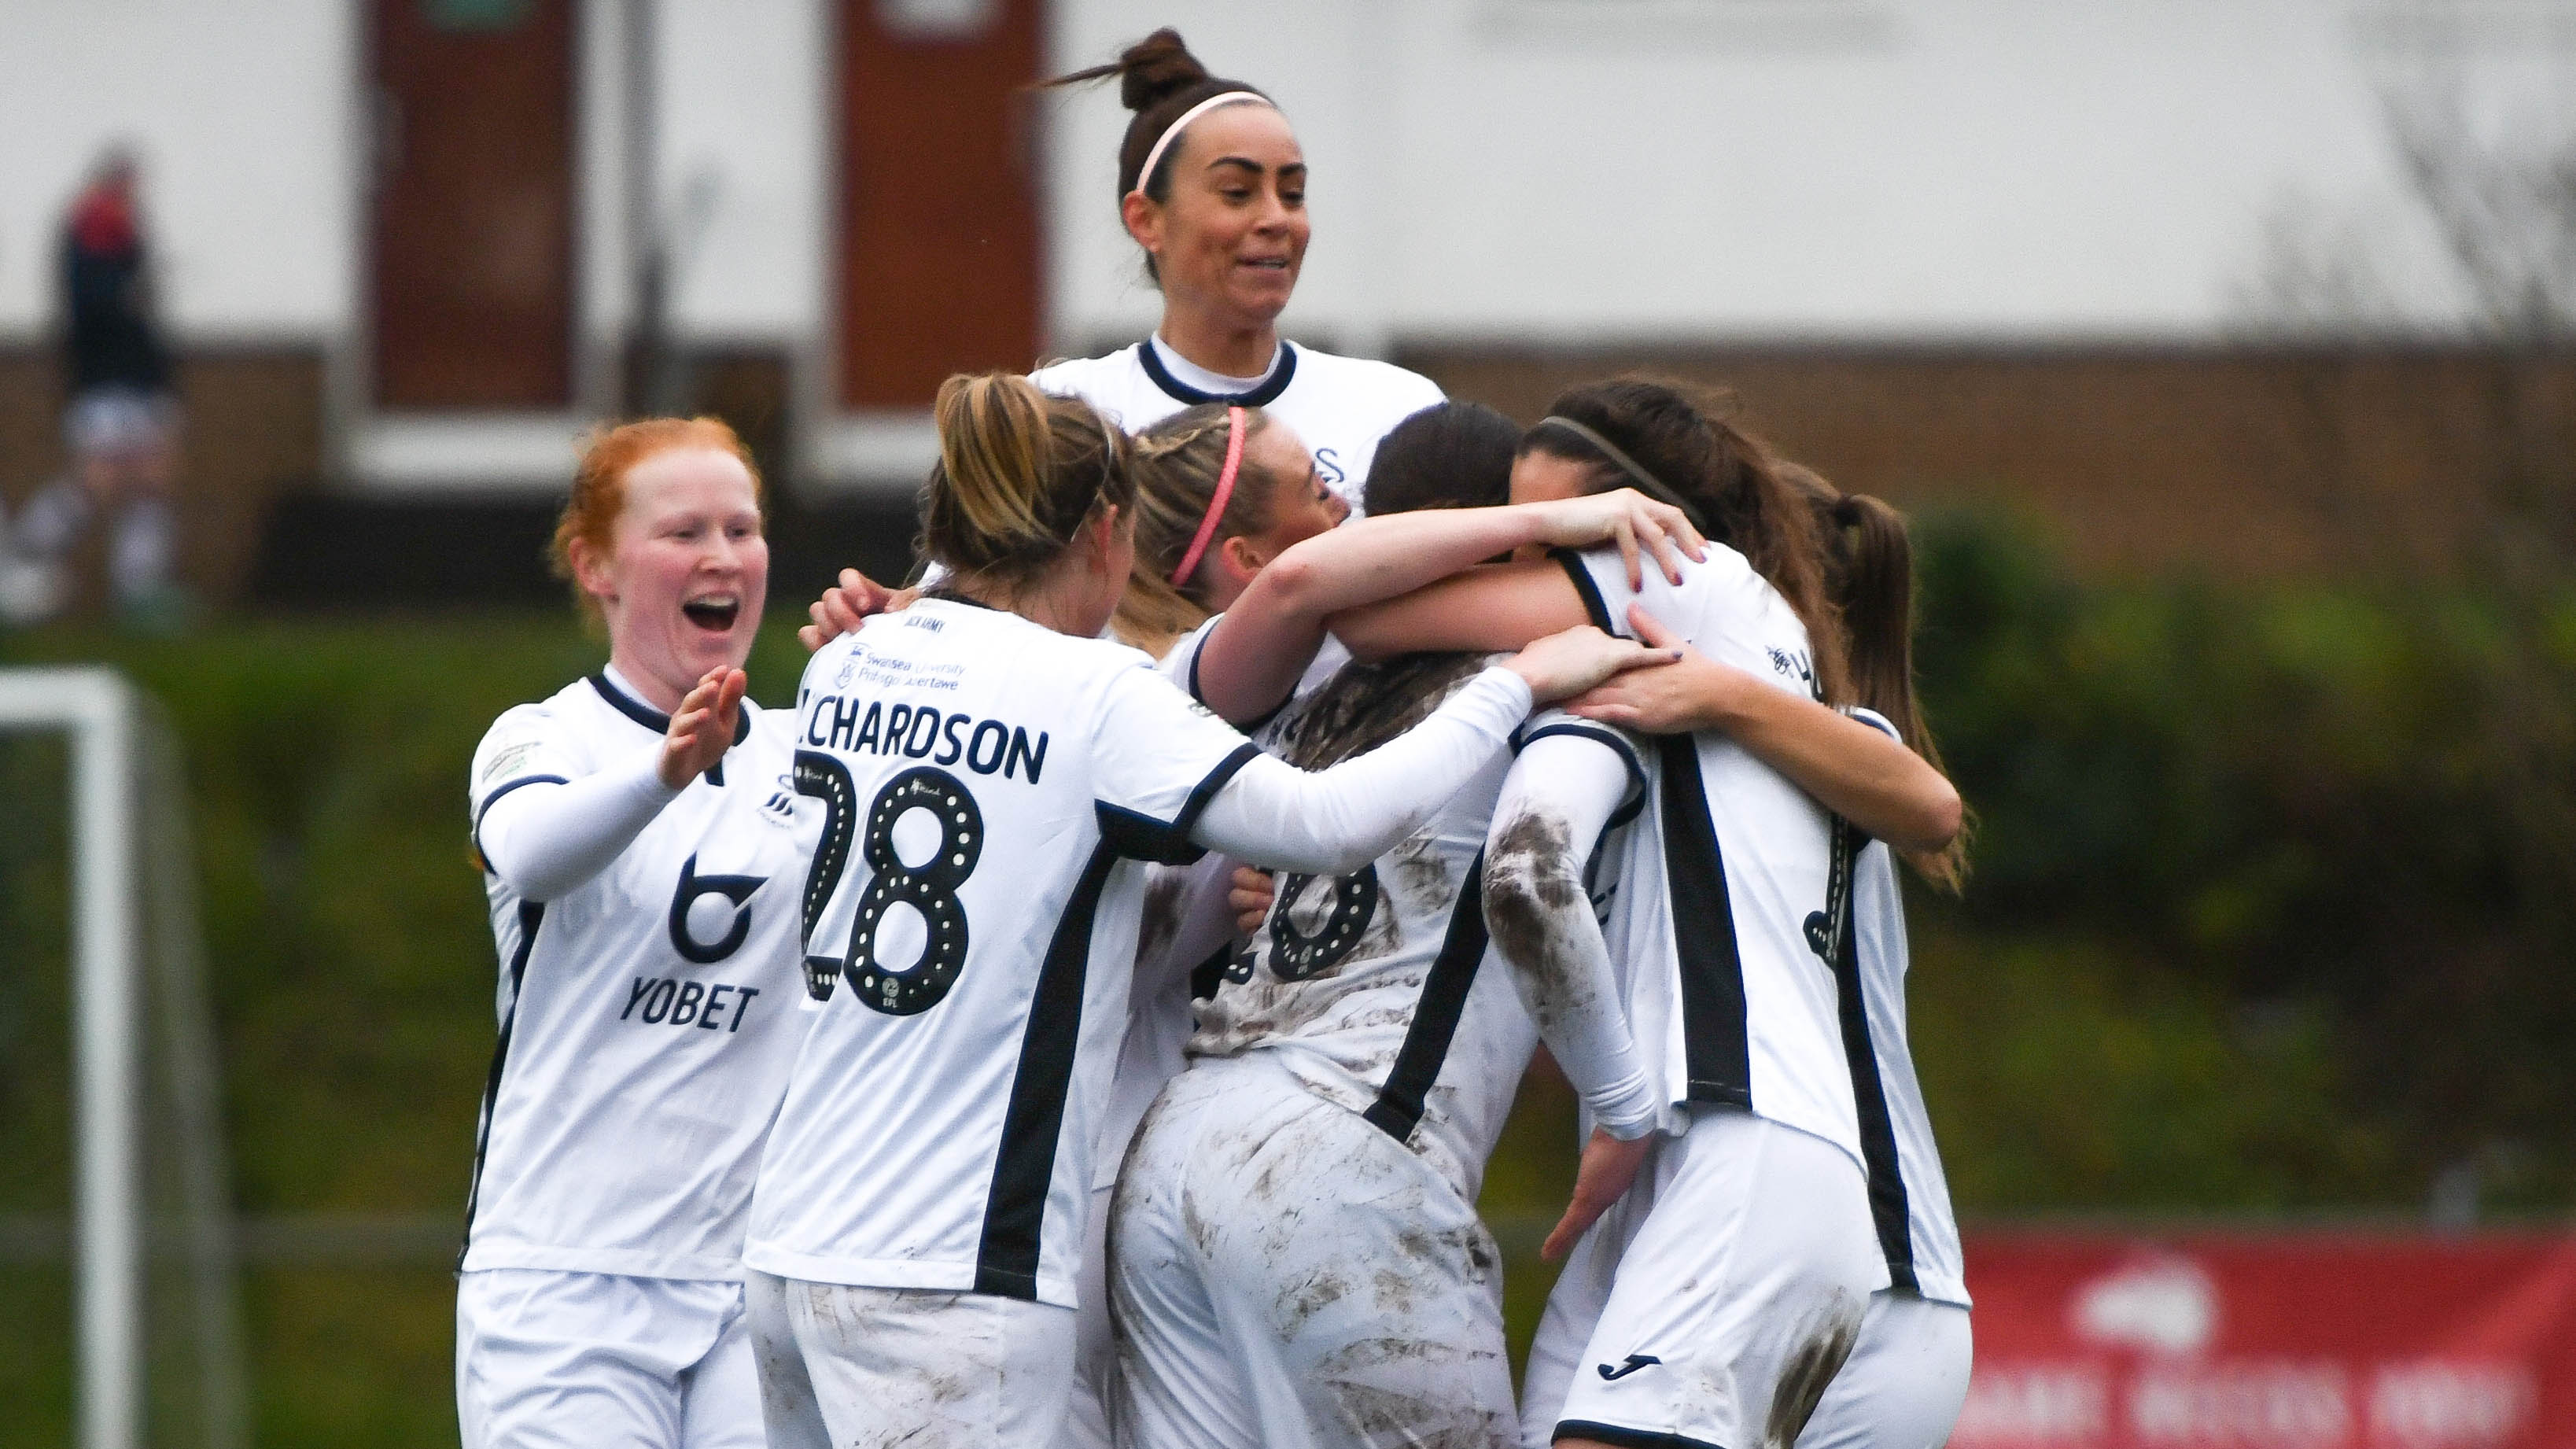 Swansea City Ladies celebrate a goal